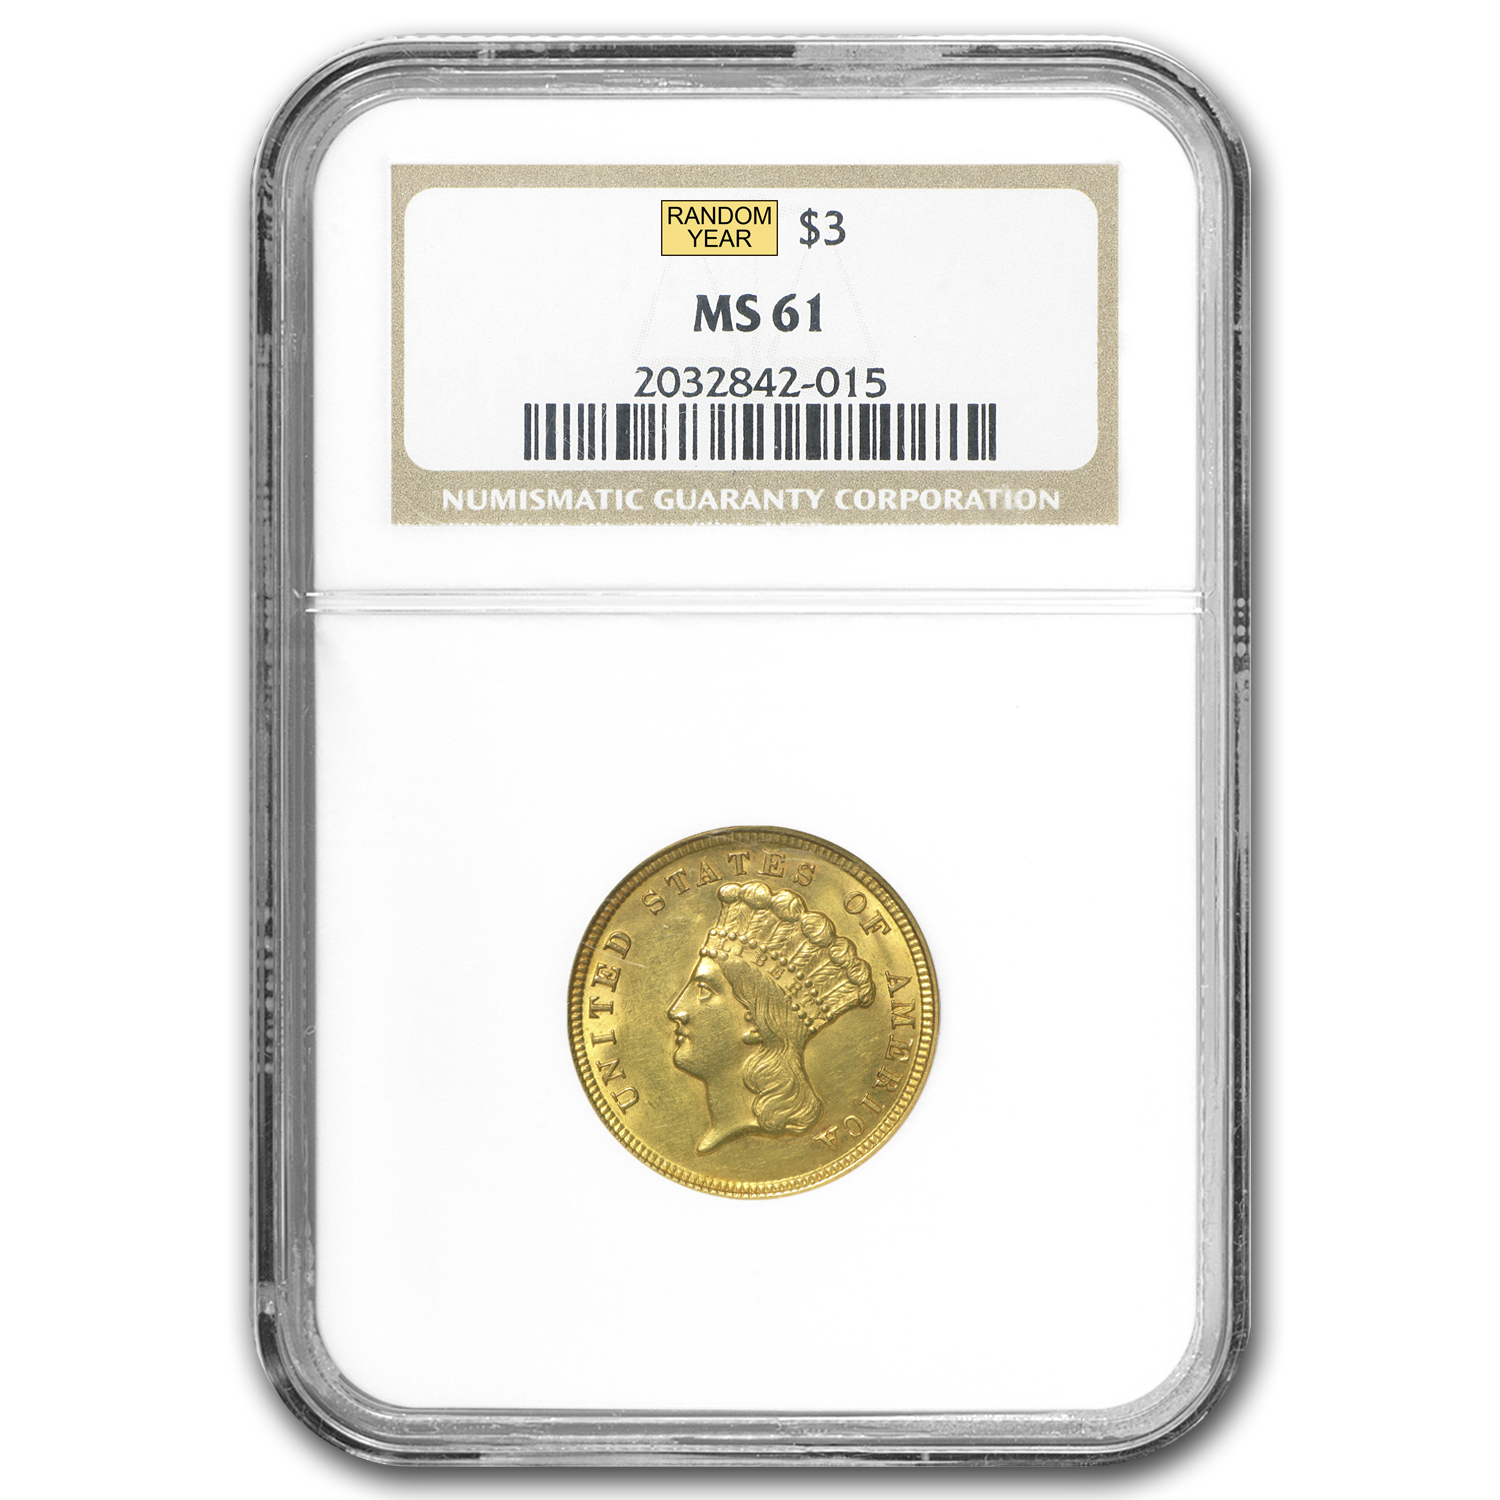 $3 Gold Princess MS-61 NGC/PCGS - Random Year